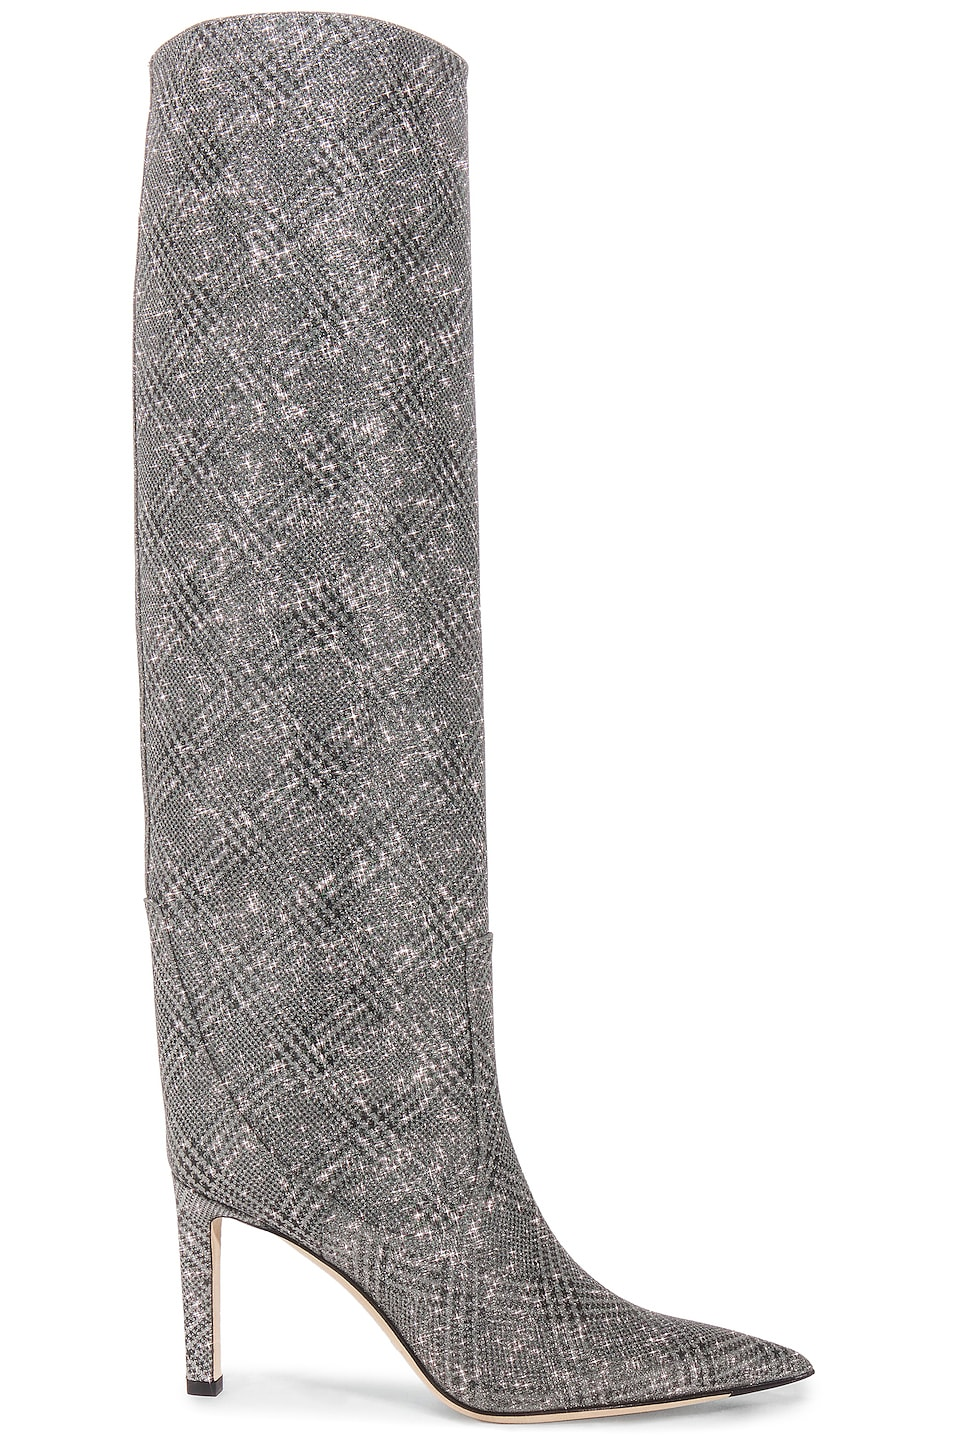 Image 1 of Jimmy Choo Mavis 85 Glitter Boots in Silver